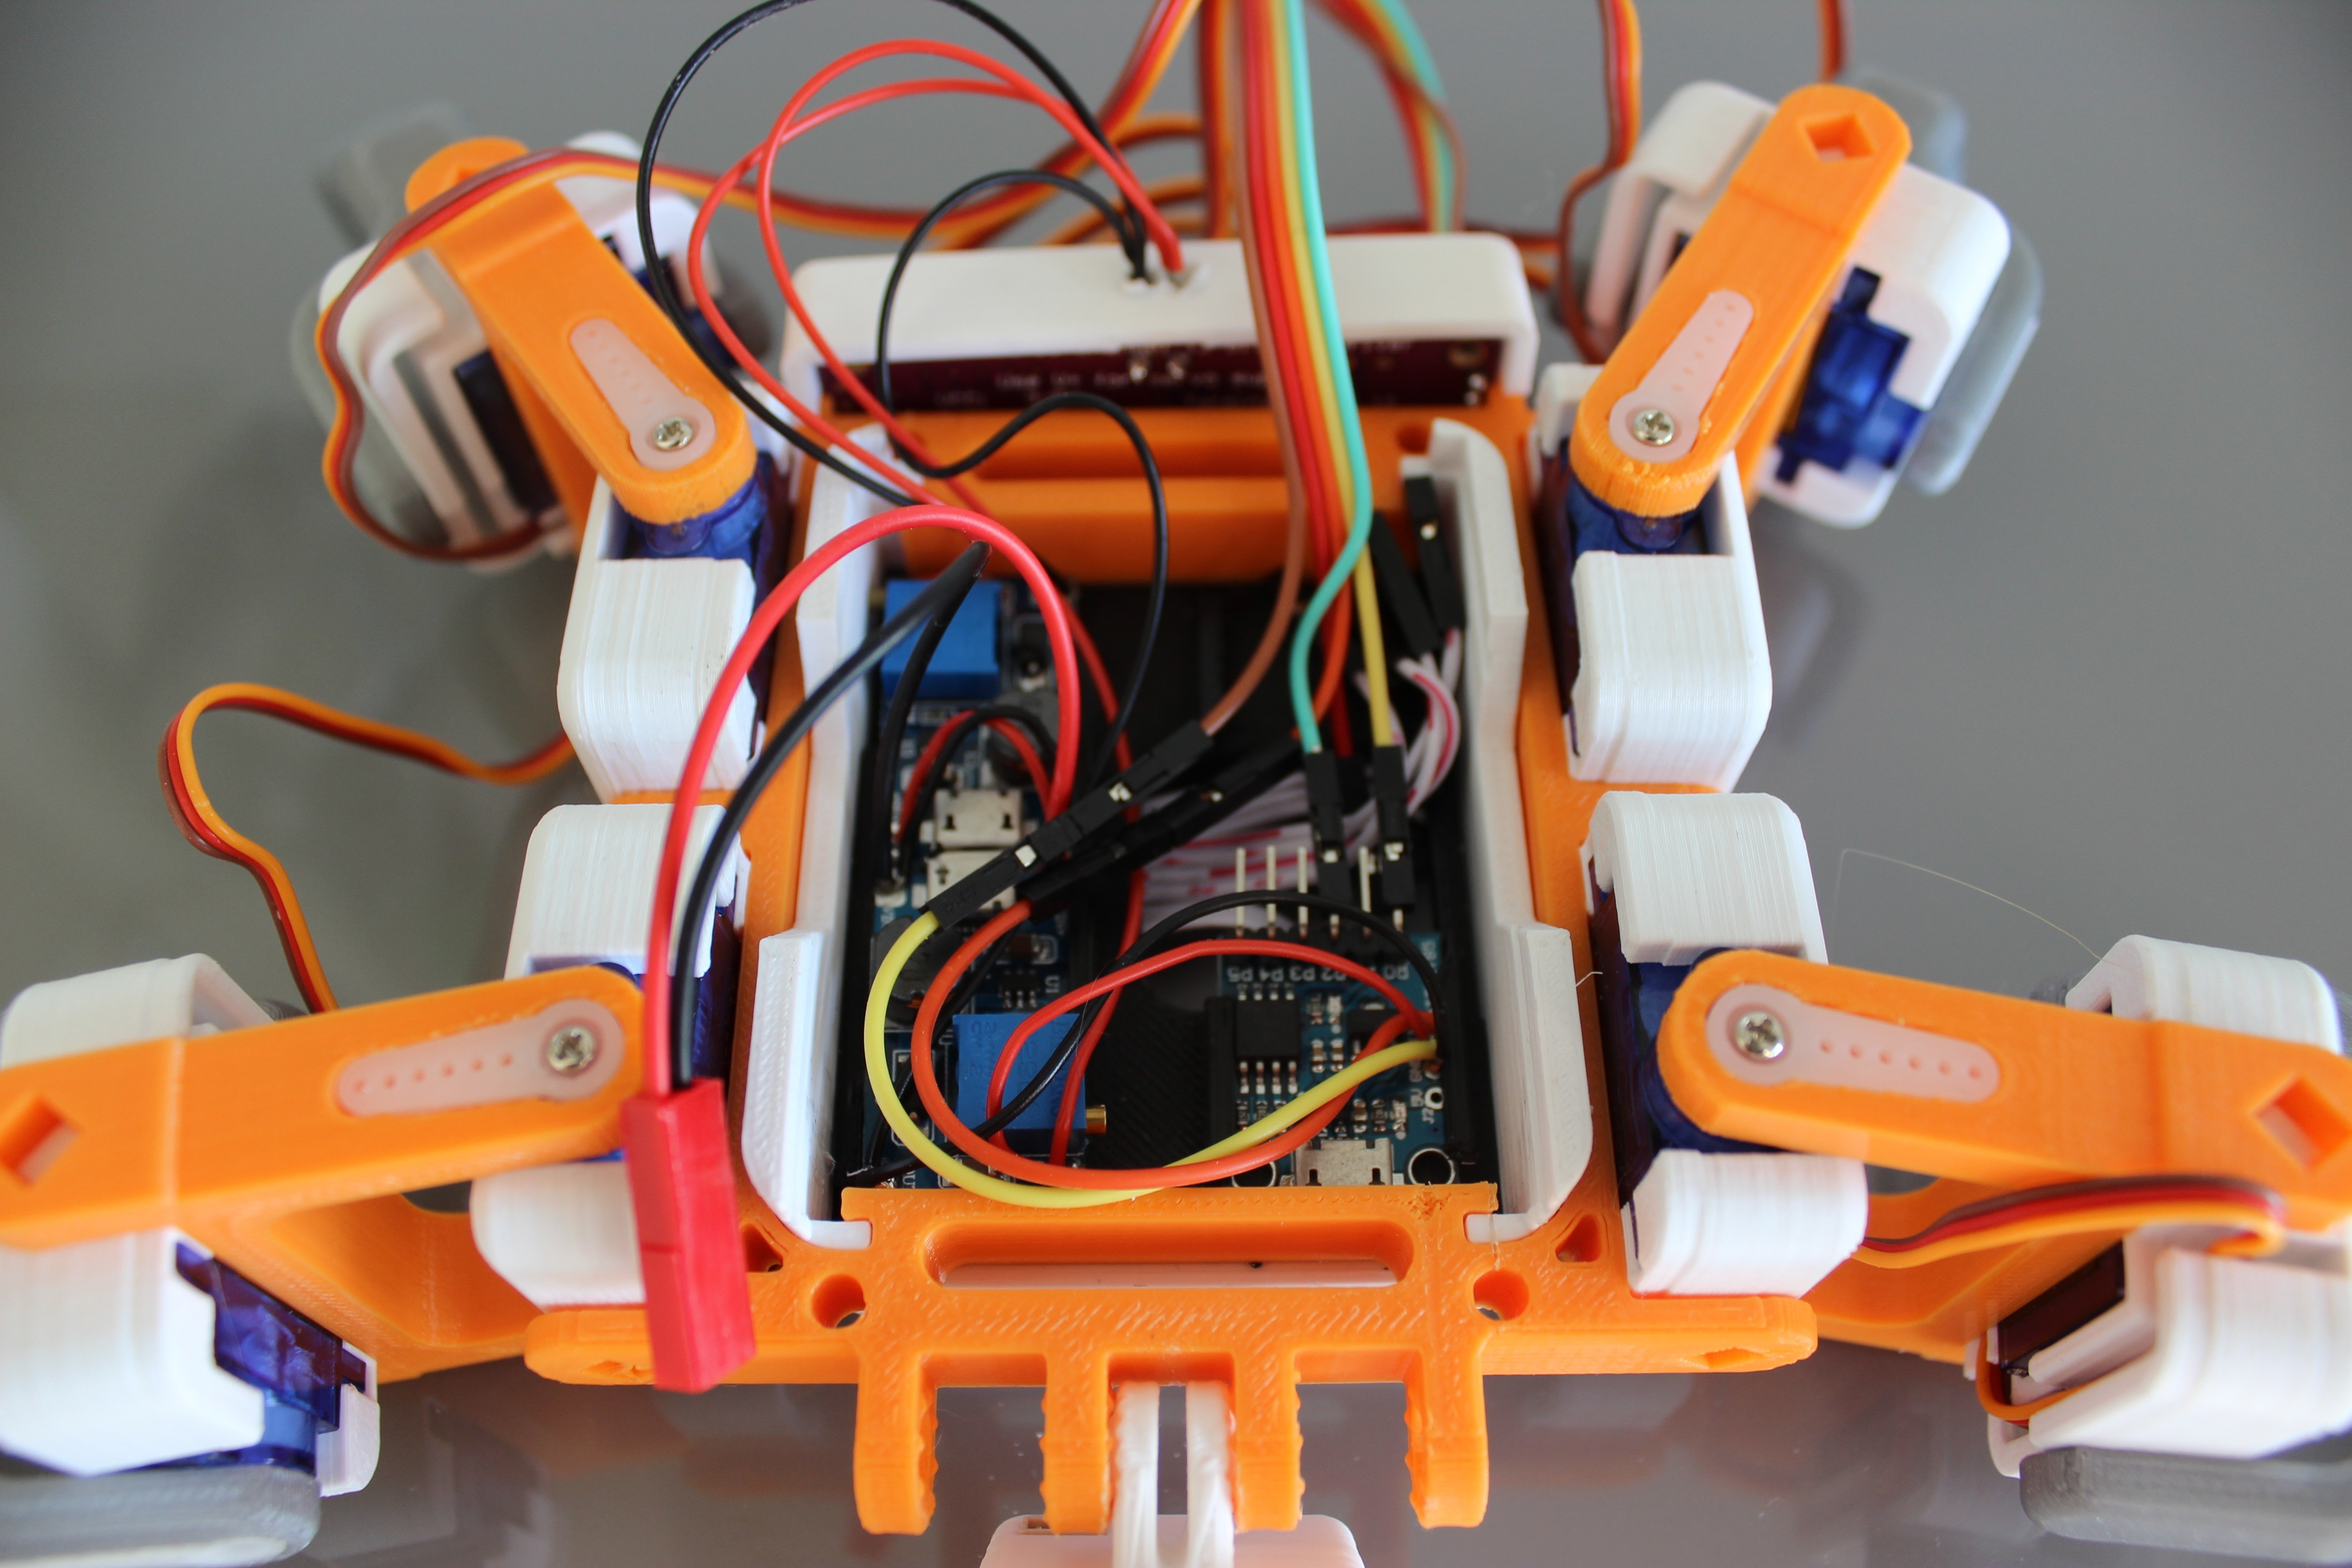 IMG_2711.JPG Download free STL file SMARS QUAD MOD • 3D printing object, Tuitxy